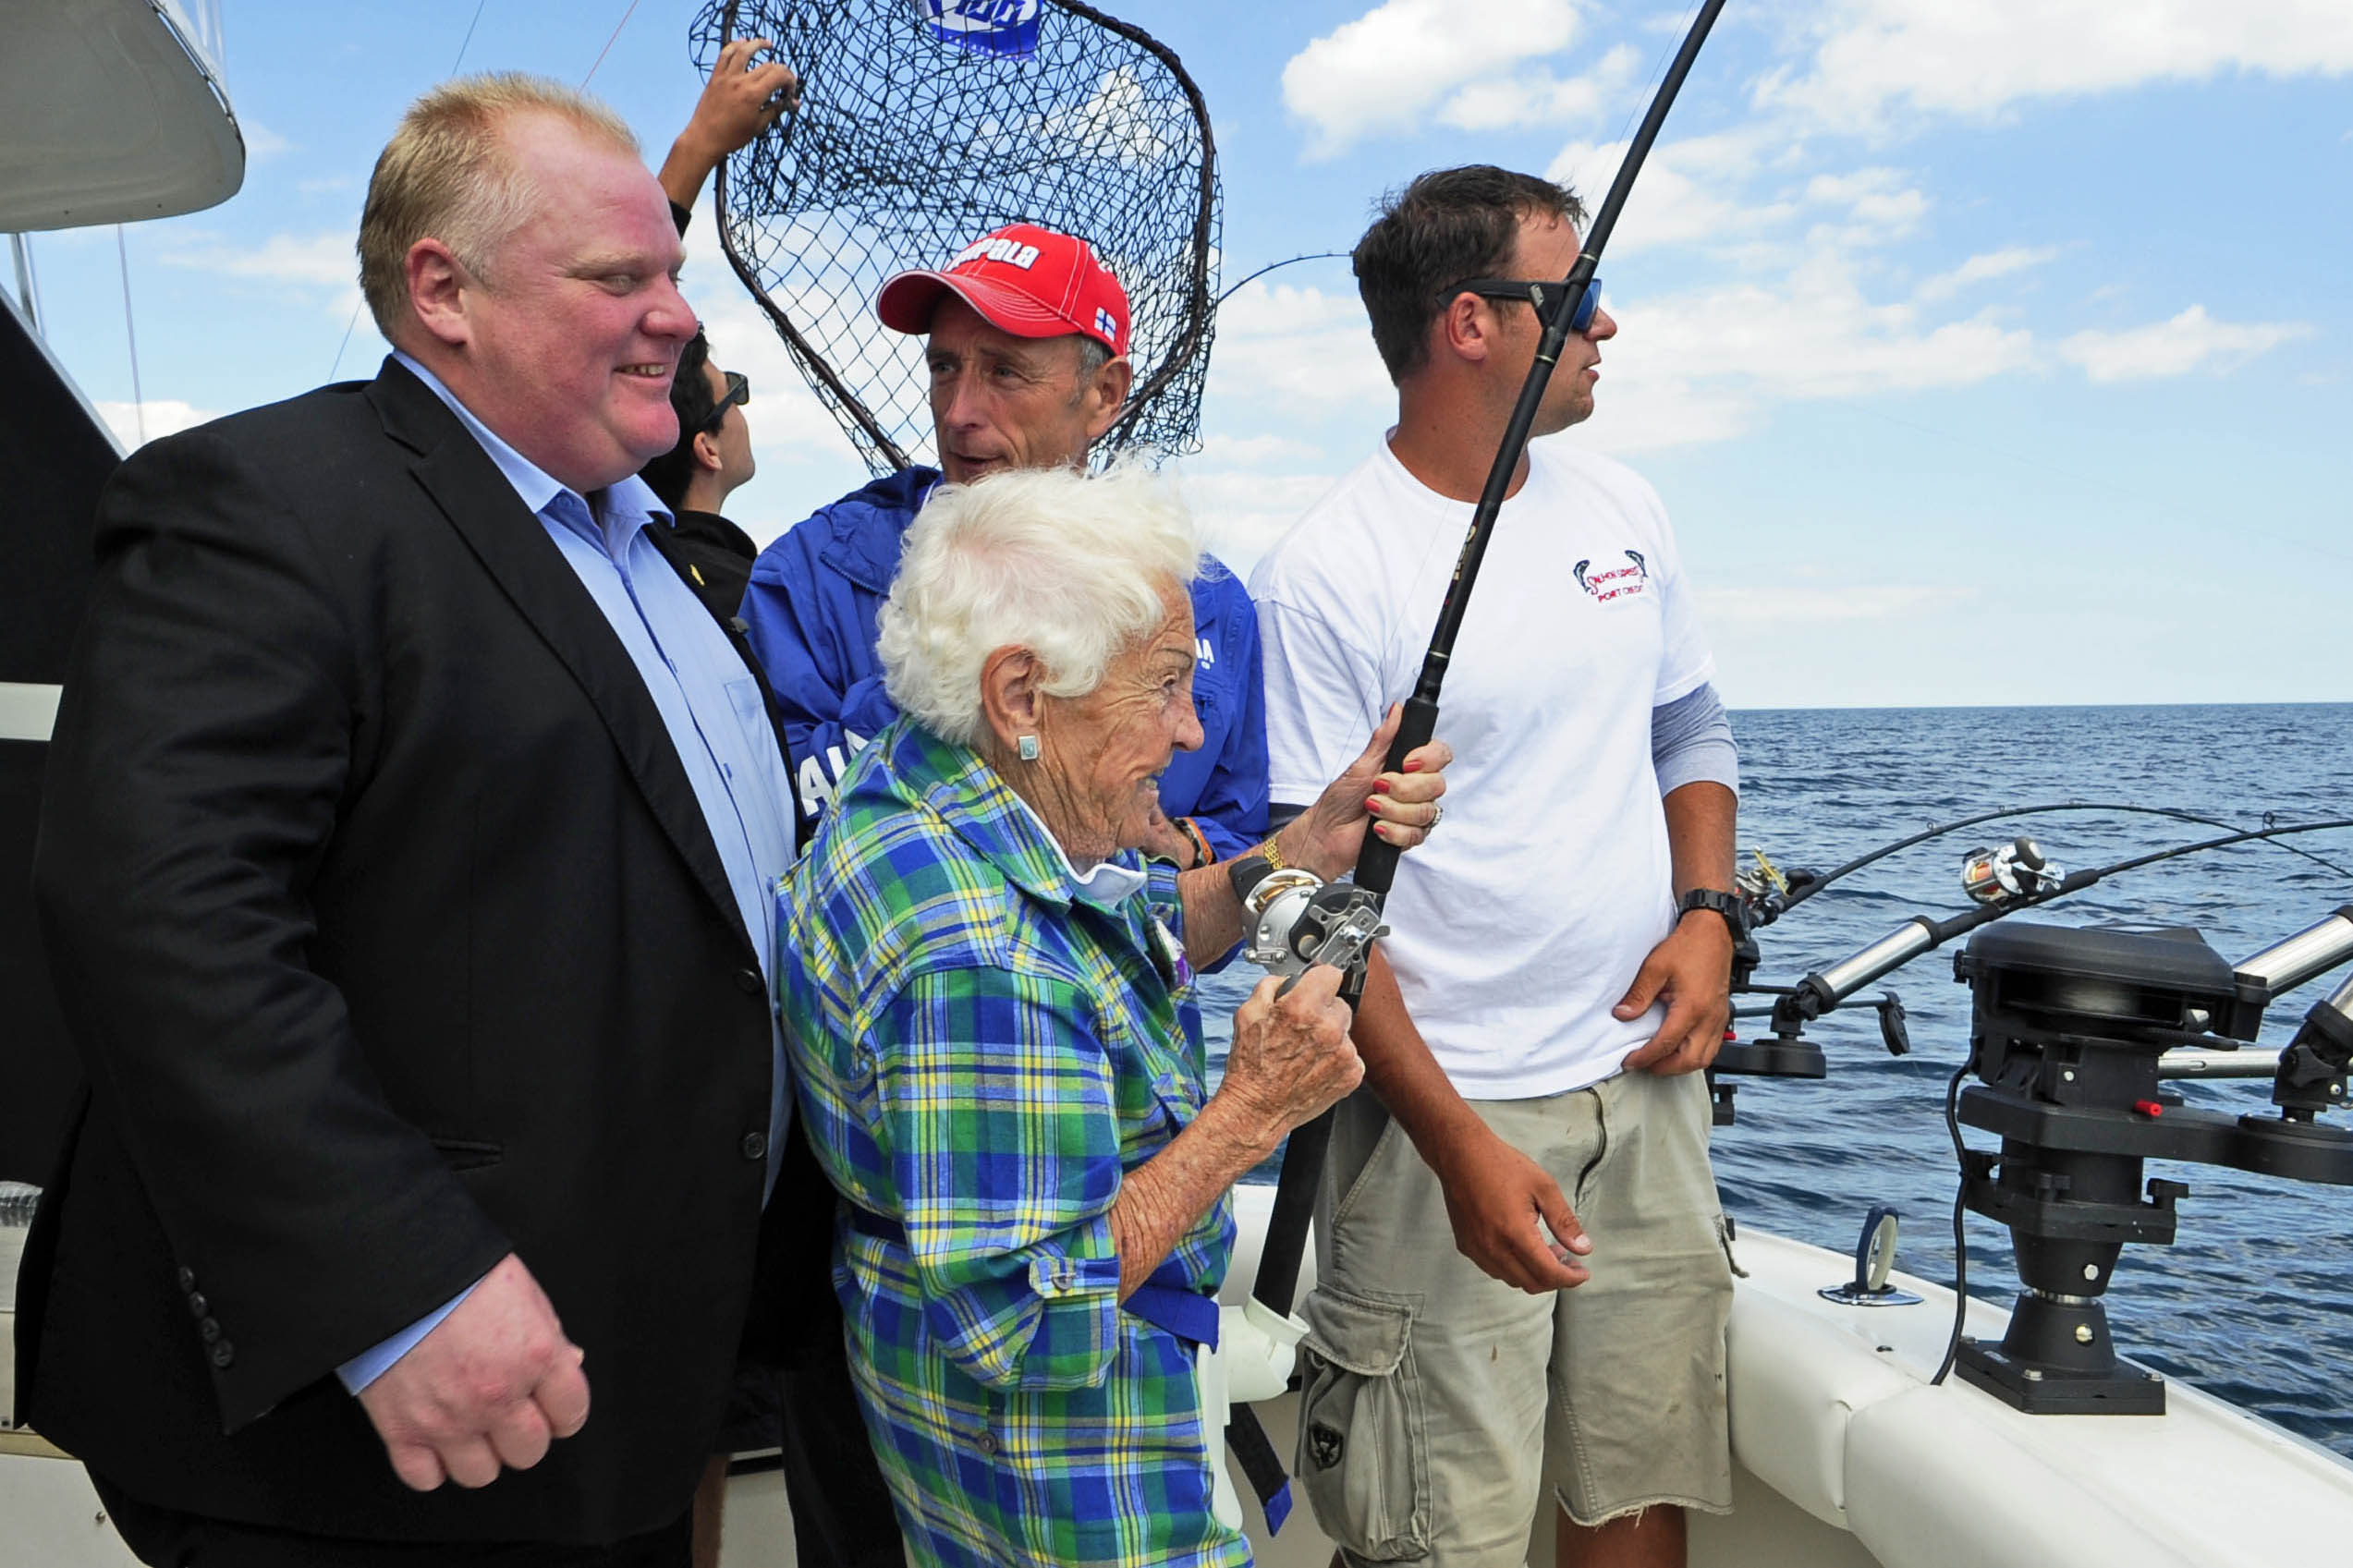 Ontario offering free fishing lessons at 6 locations ...